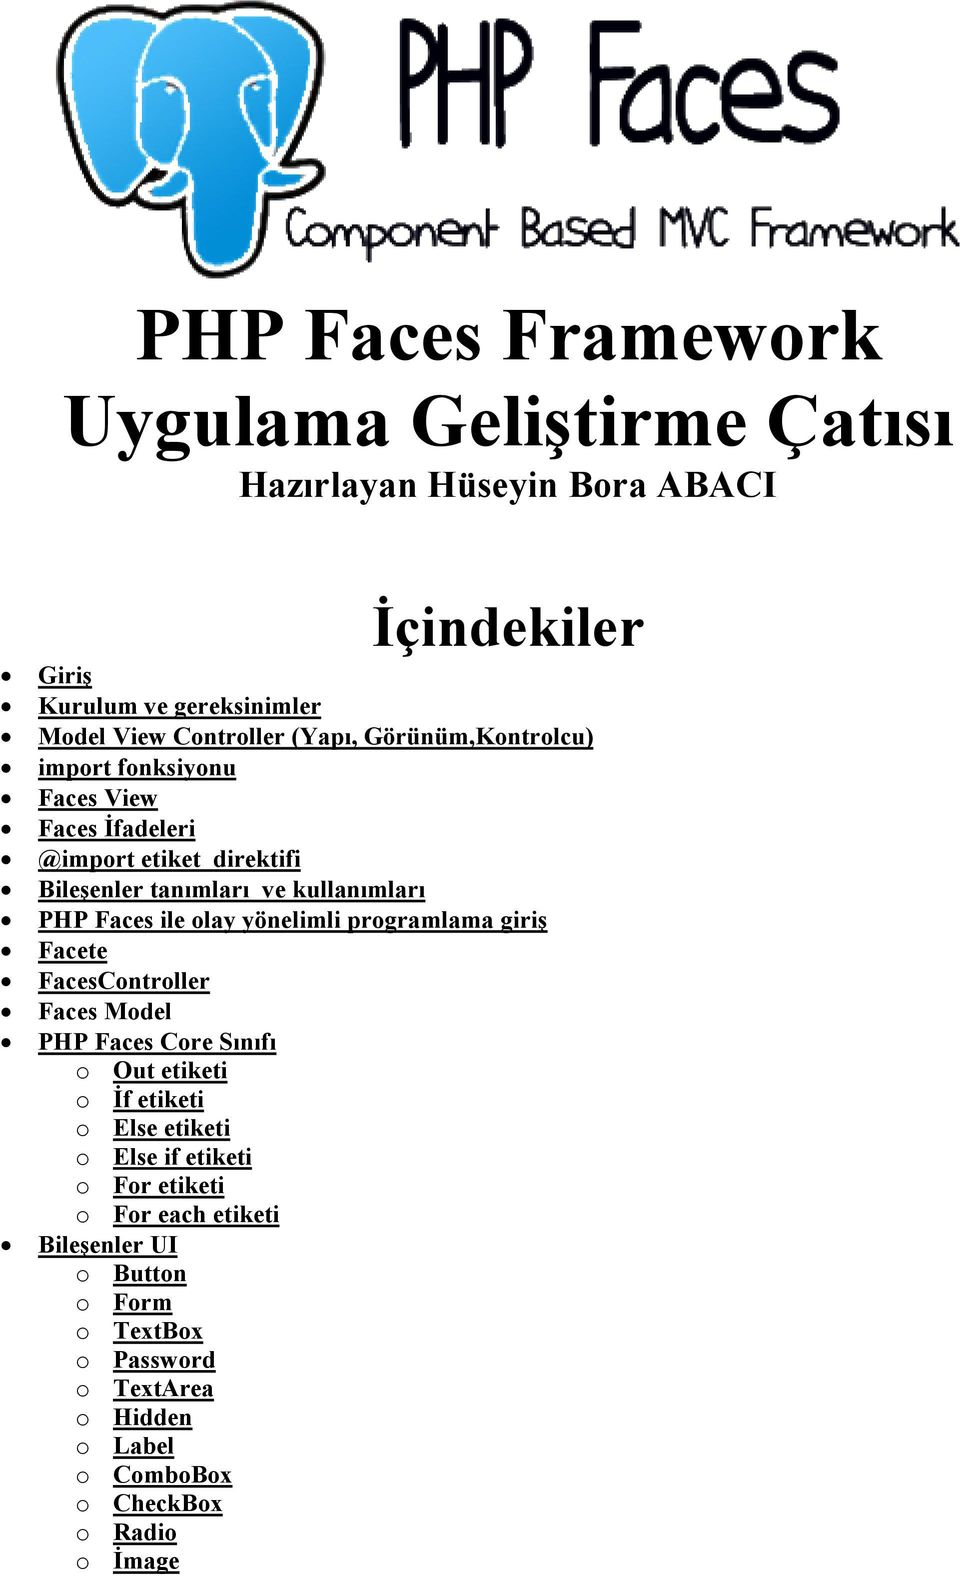 olay yönelimli programlama giriş Facete FacesController Faces Model PHP Faces Core Sınıfı o Out etiketi o Đf etiketi o Else etiketi o Else if